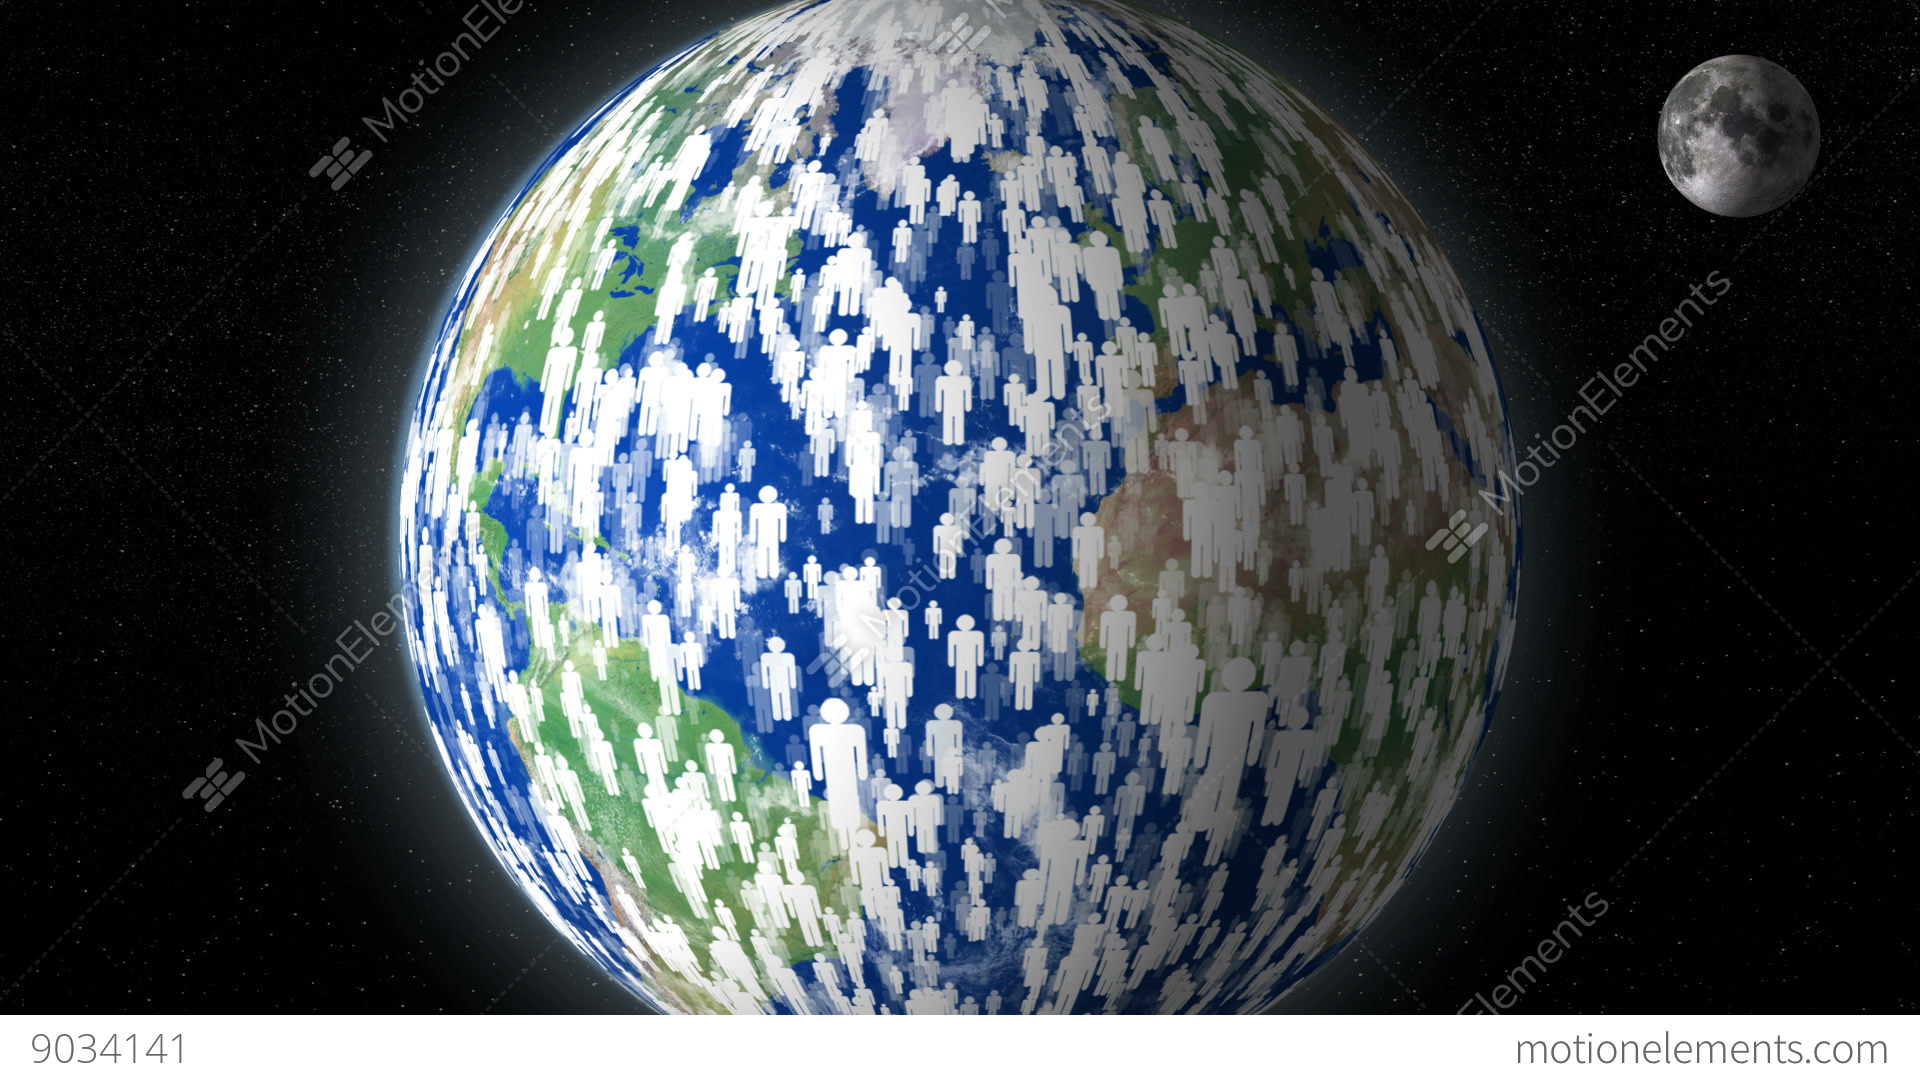 Cute Country Wallpaper Earth Human Overpopulation Distroy Planet 11778 Stock